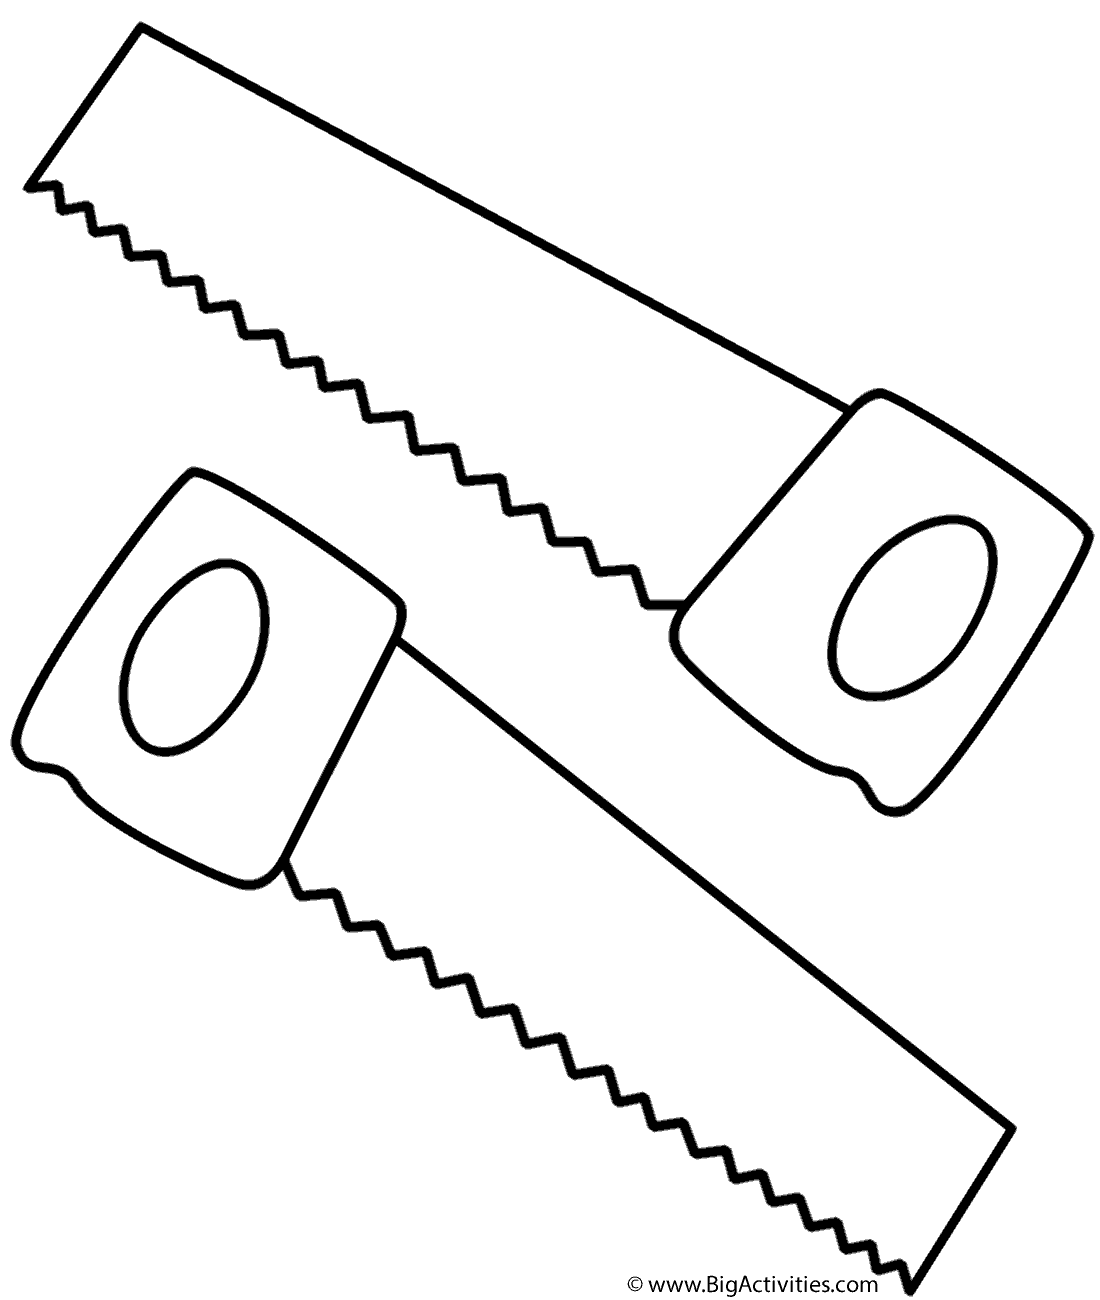 chainsaw coloring pages saws coloring page tools coloring pages chainsaw